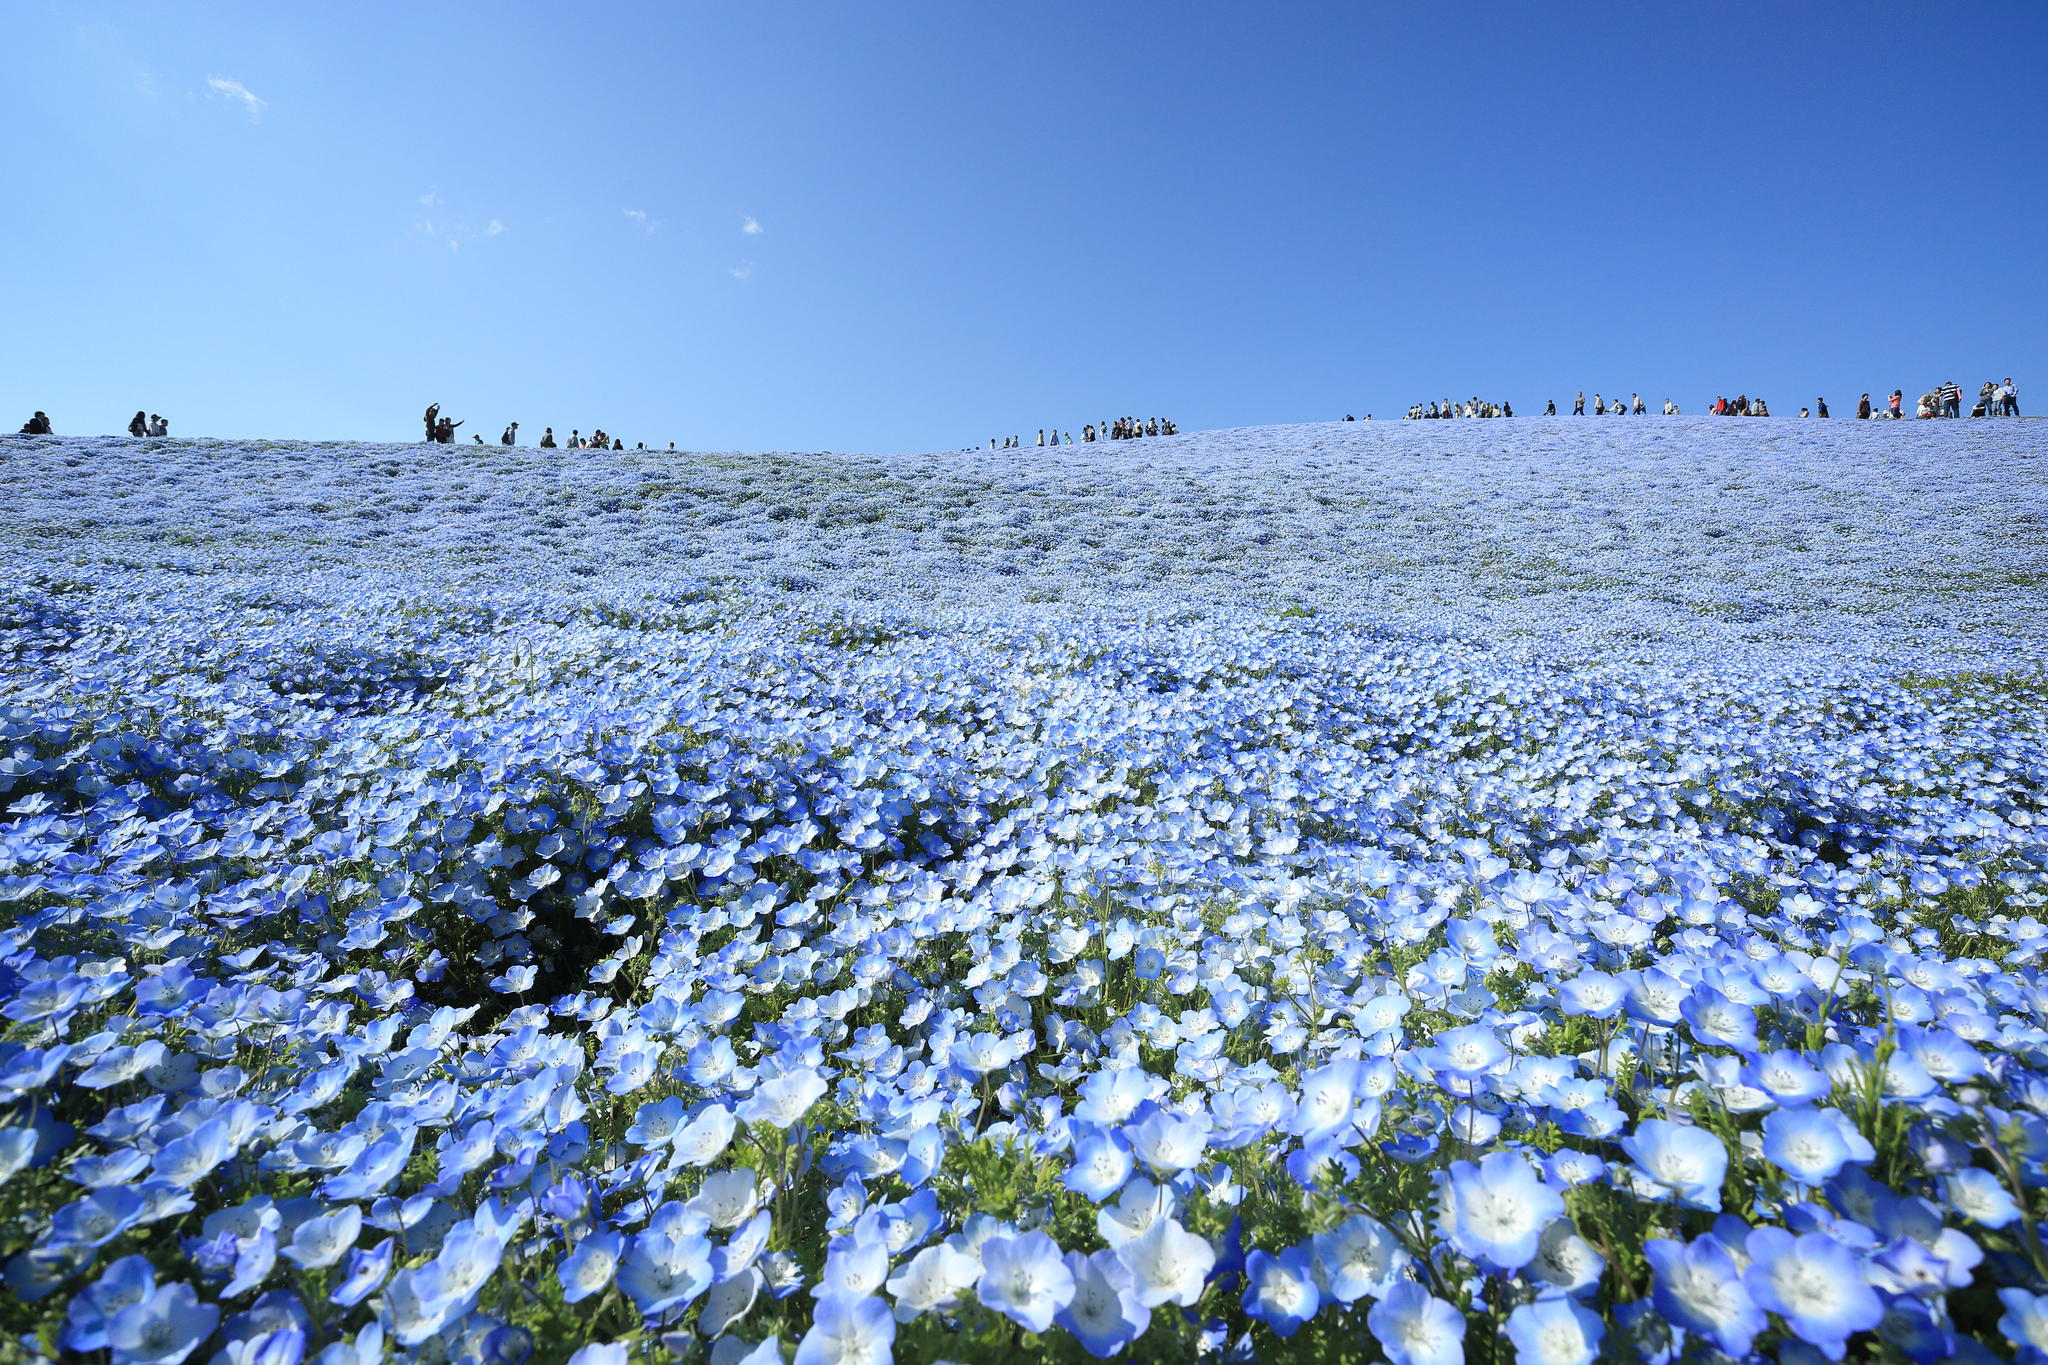 A Field with Millions of Flowers